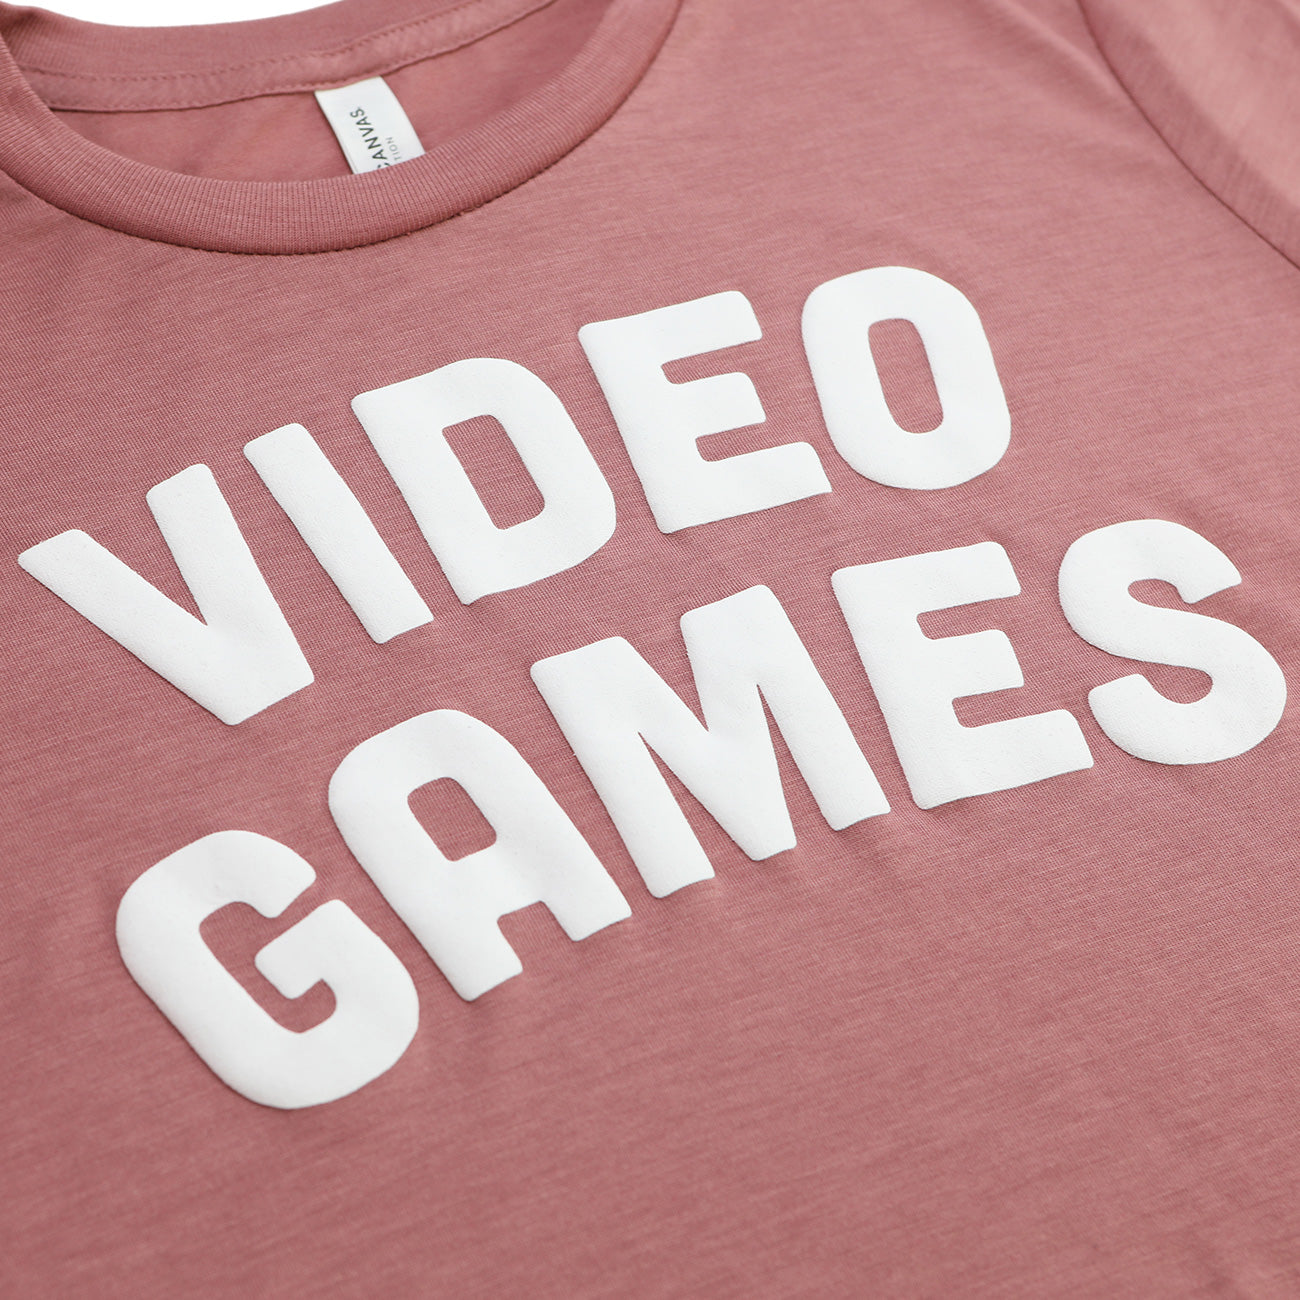 VIDEO GAMES Crop Top (Pink)